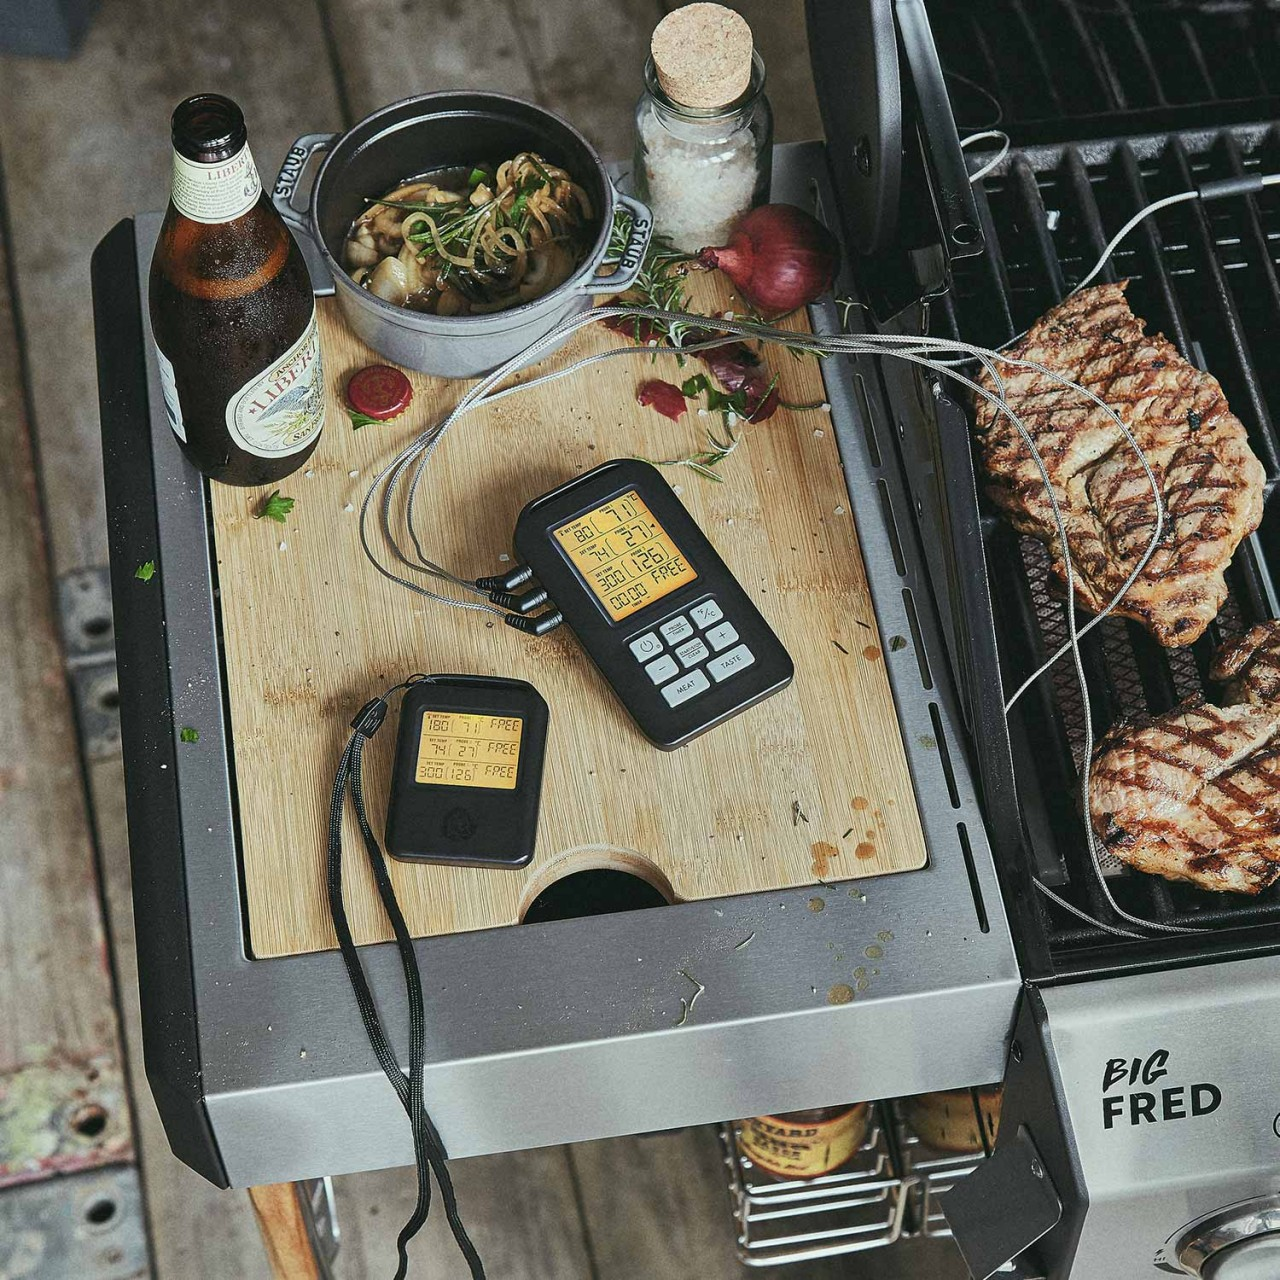 grillthermometer funk bbq thermometer f r grill backofen. Black Bedroom Furniture Sets. Home Design Ideas